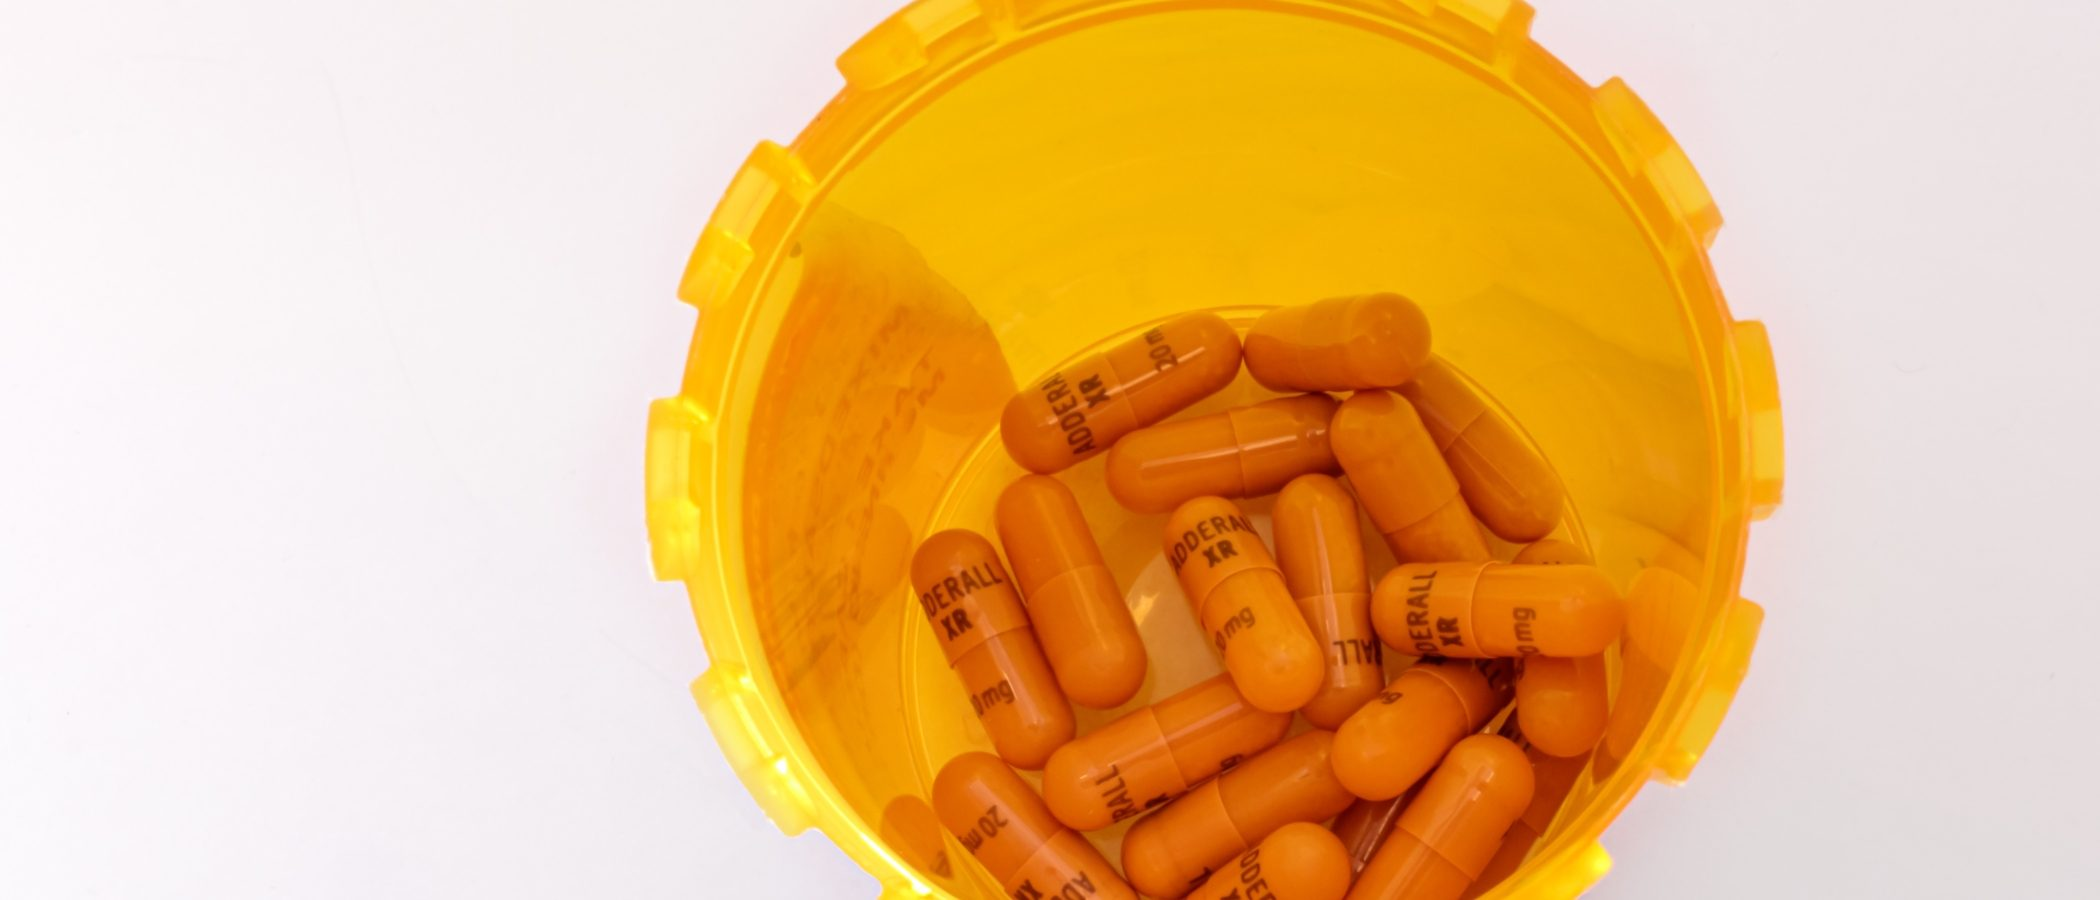 Adderall Addiction and Abuse